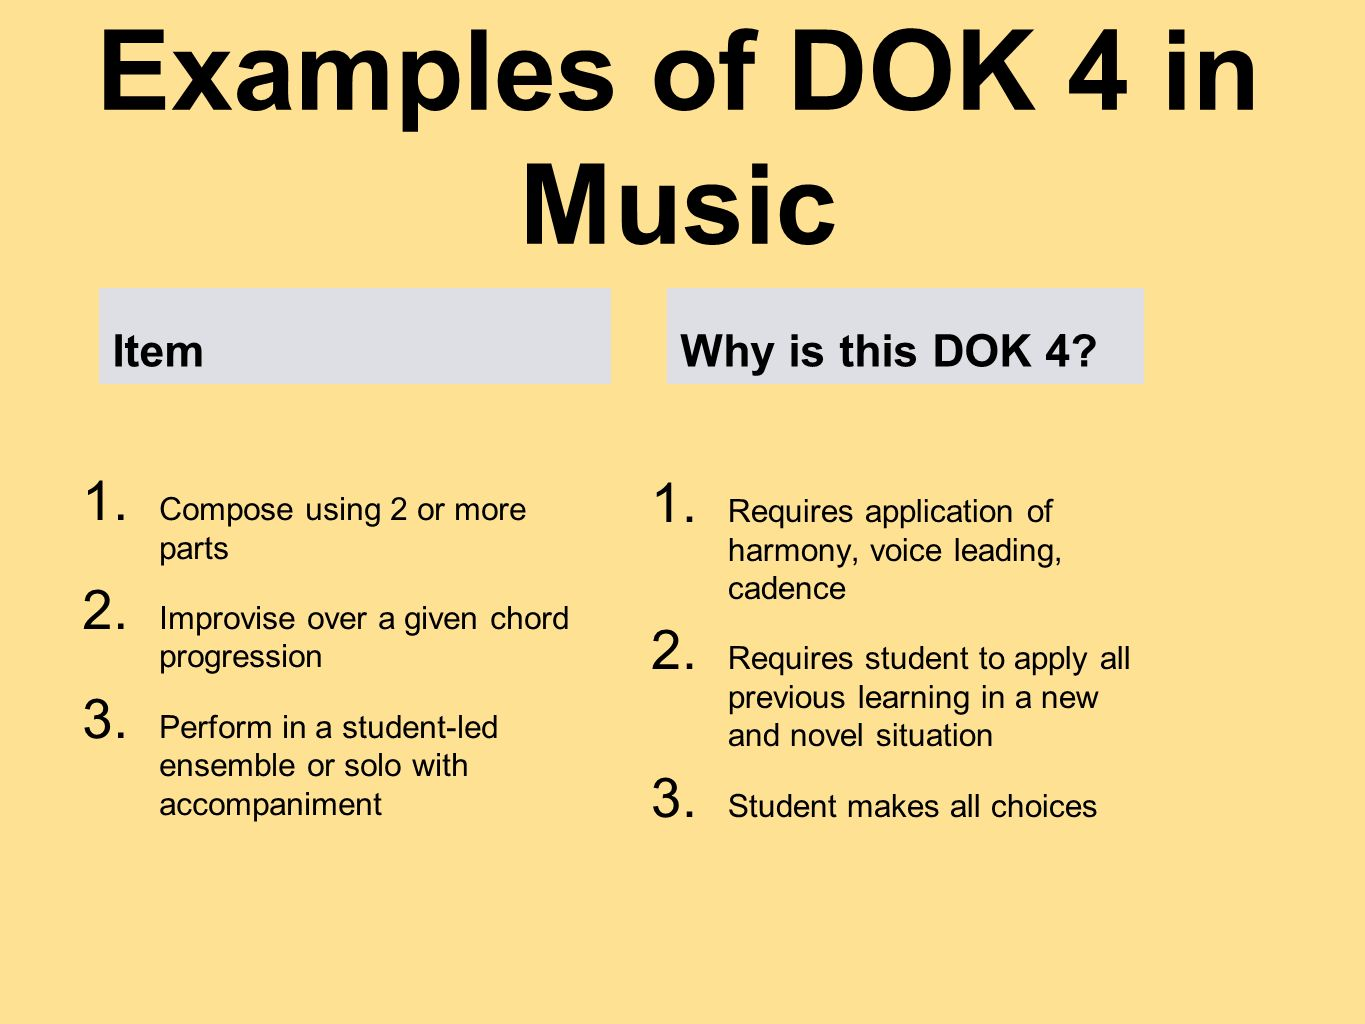 Examples of DOK 4 in Music